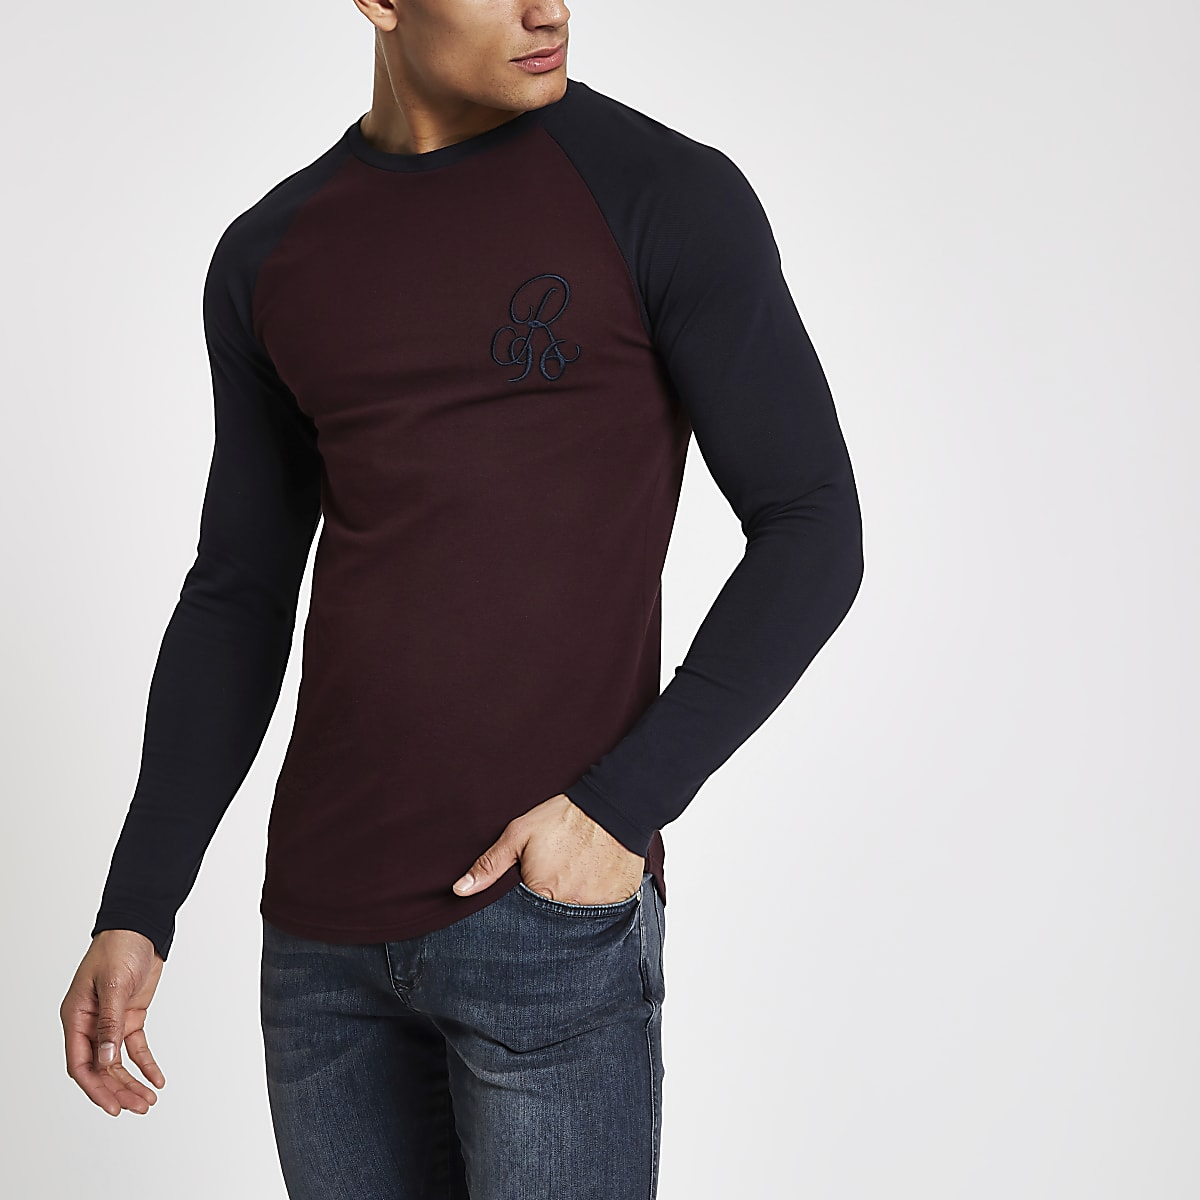 34489d7dd08 Dark red R96 muscle fit long sleeve T-shirt